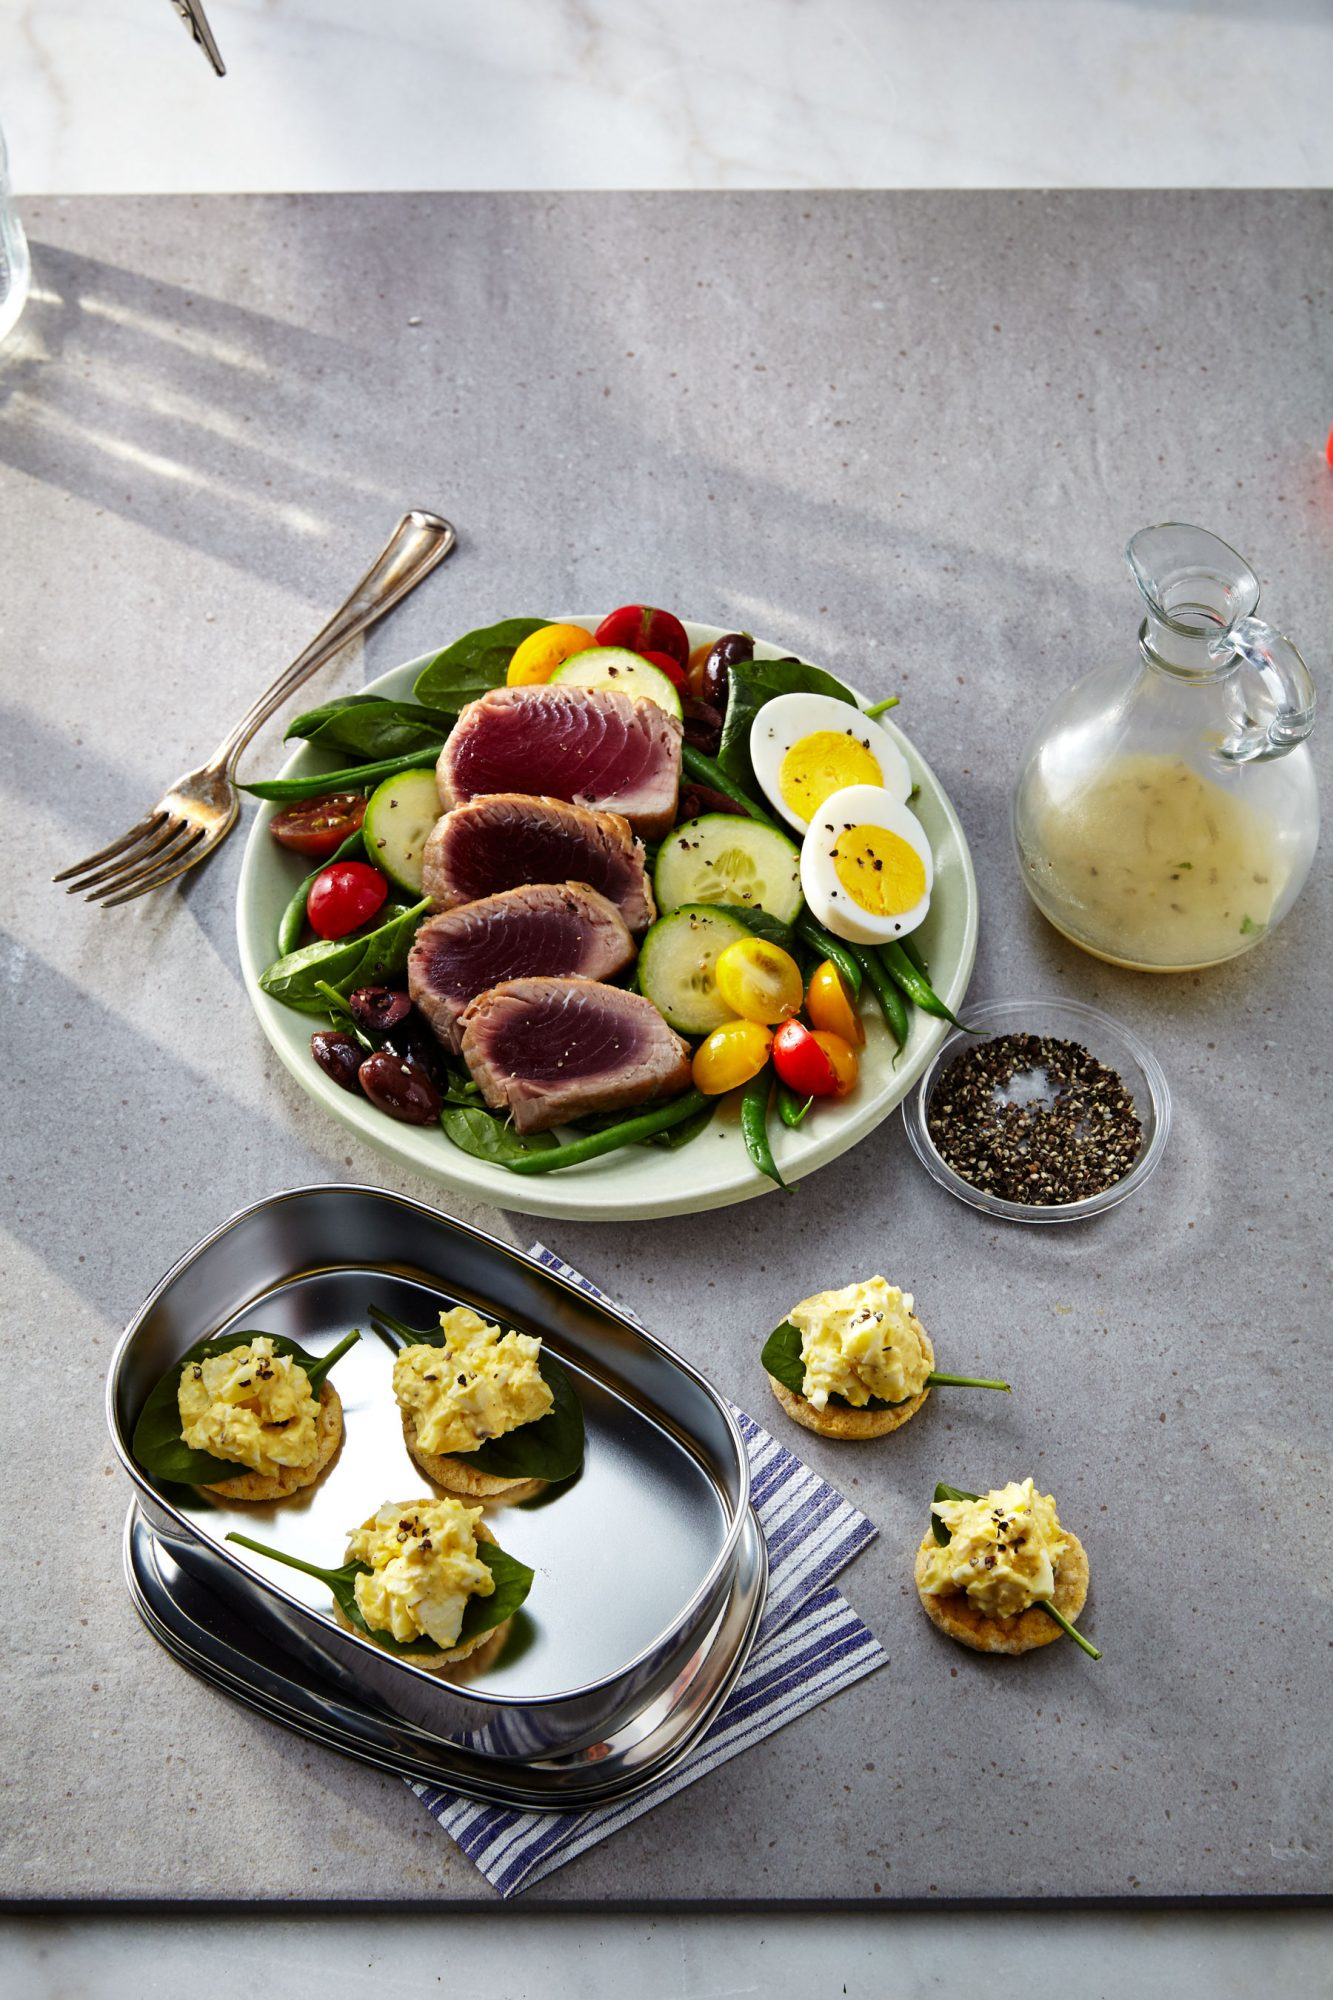 Spinach Salad Nicoise/Egg Salad on Rice Cakes image